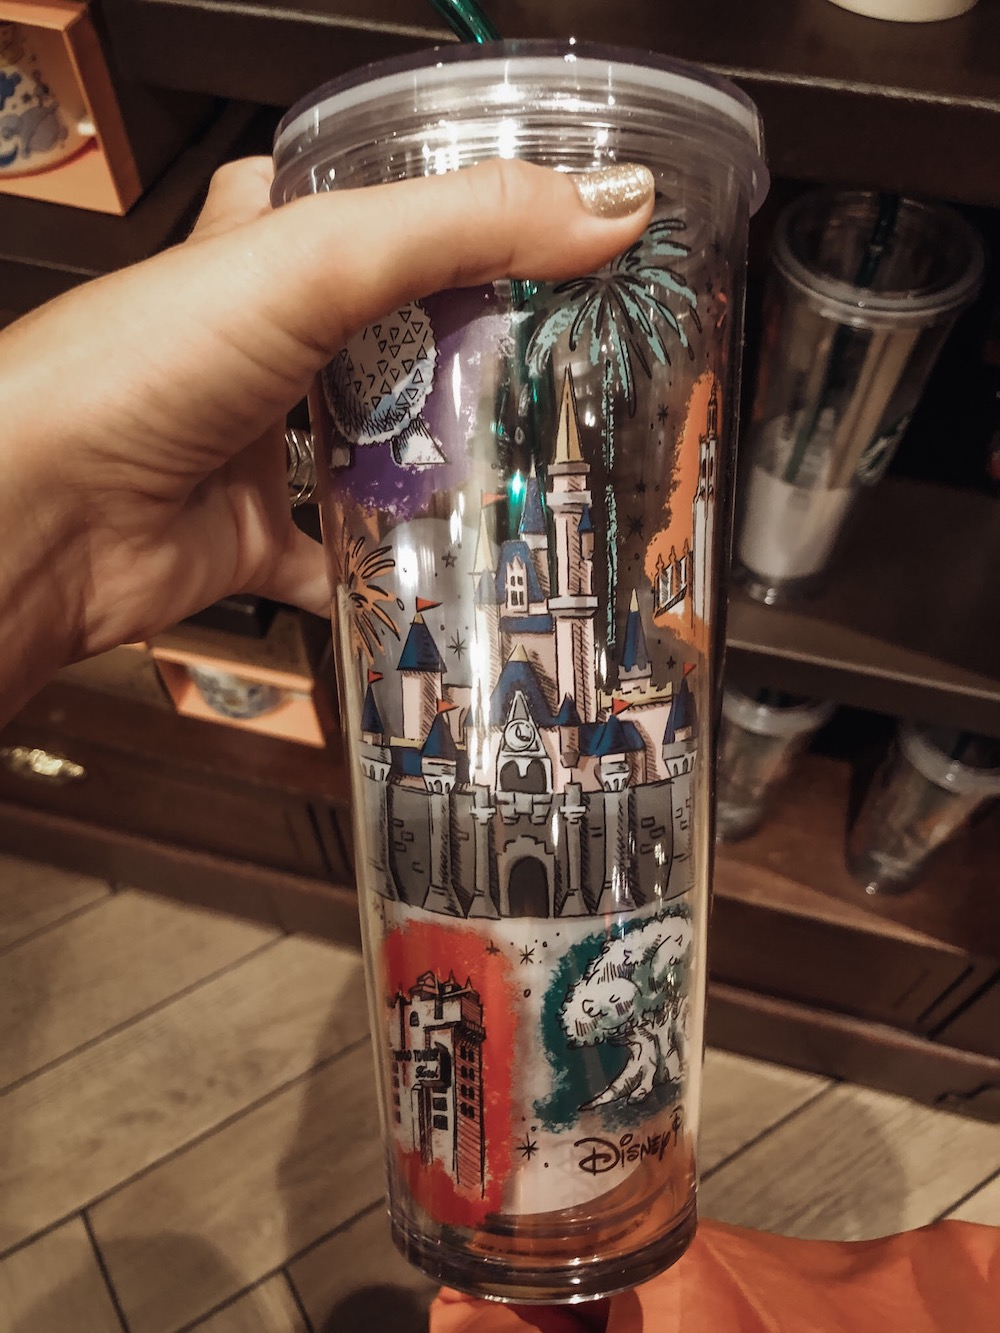 Disney World Starbucks Halloween Cup Image